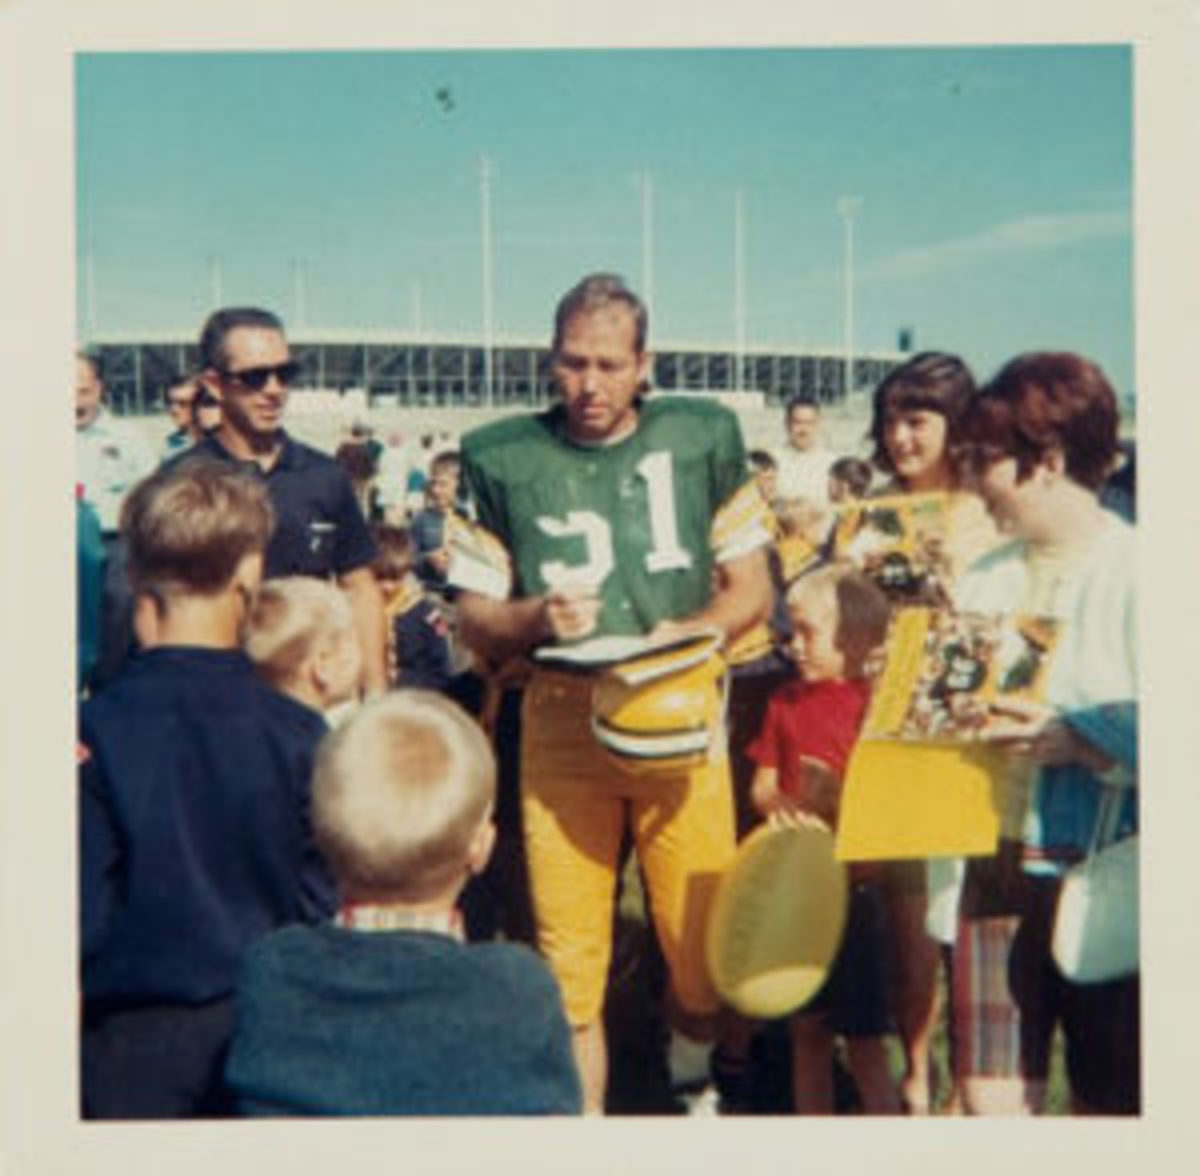 Bart Starr signs for fans at training camp in 1967. (Image courtesy Heritage Auctions)